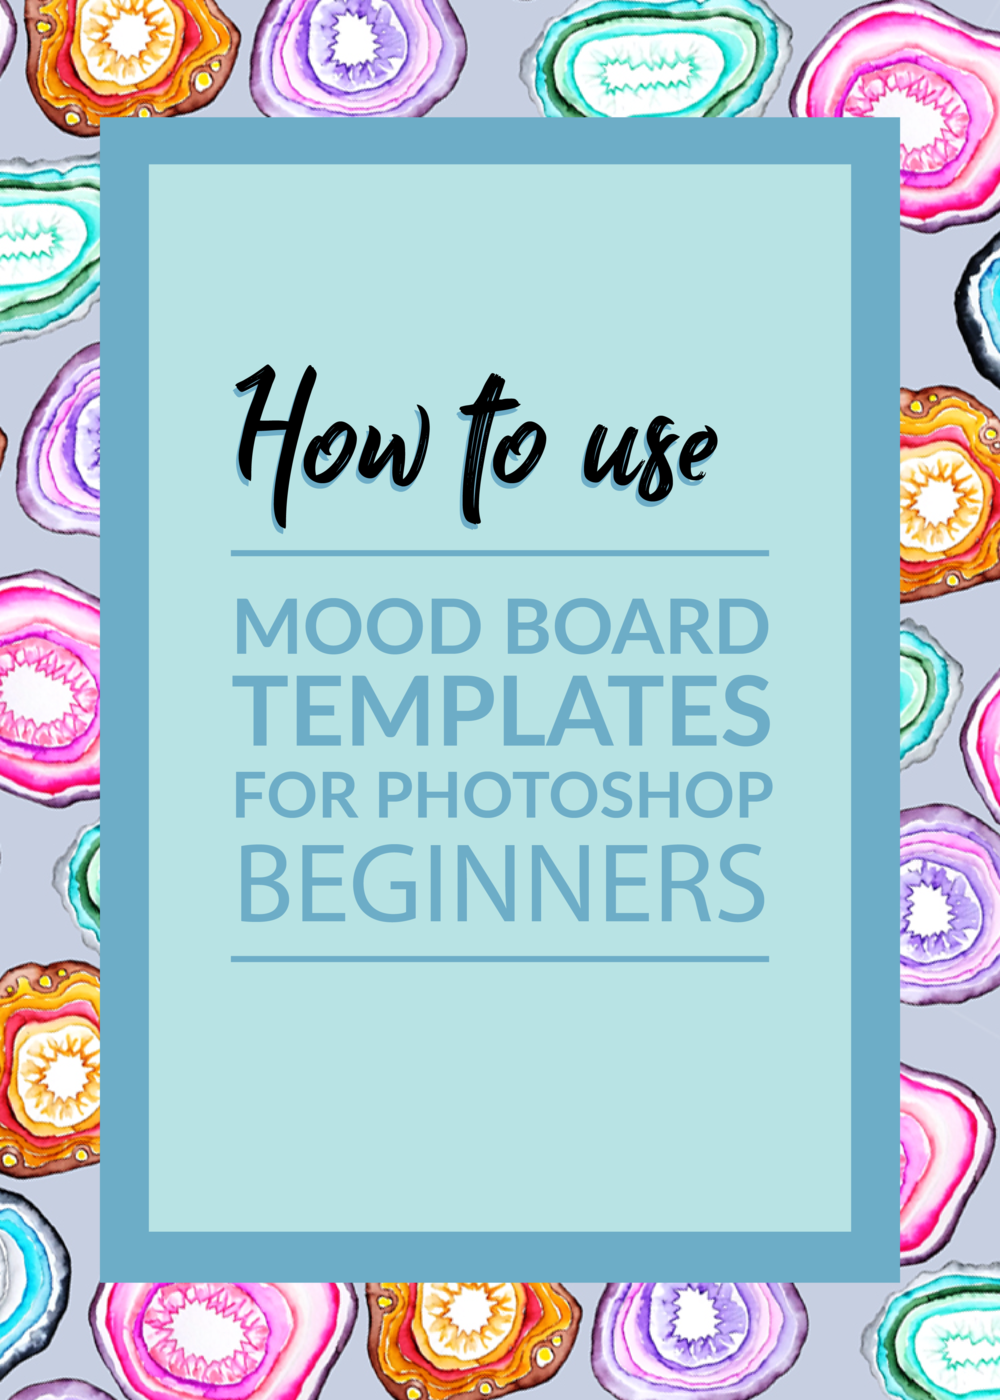 I've made 3 easy to use Photoshop mood board templates for creating fun style inspiration collages. I've included a video tutorial to show you what to do!